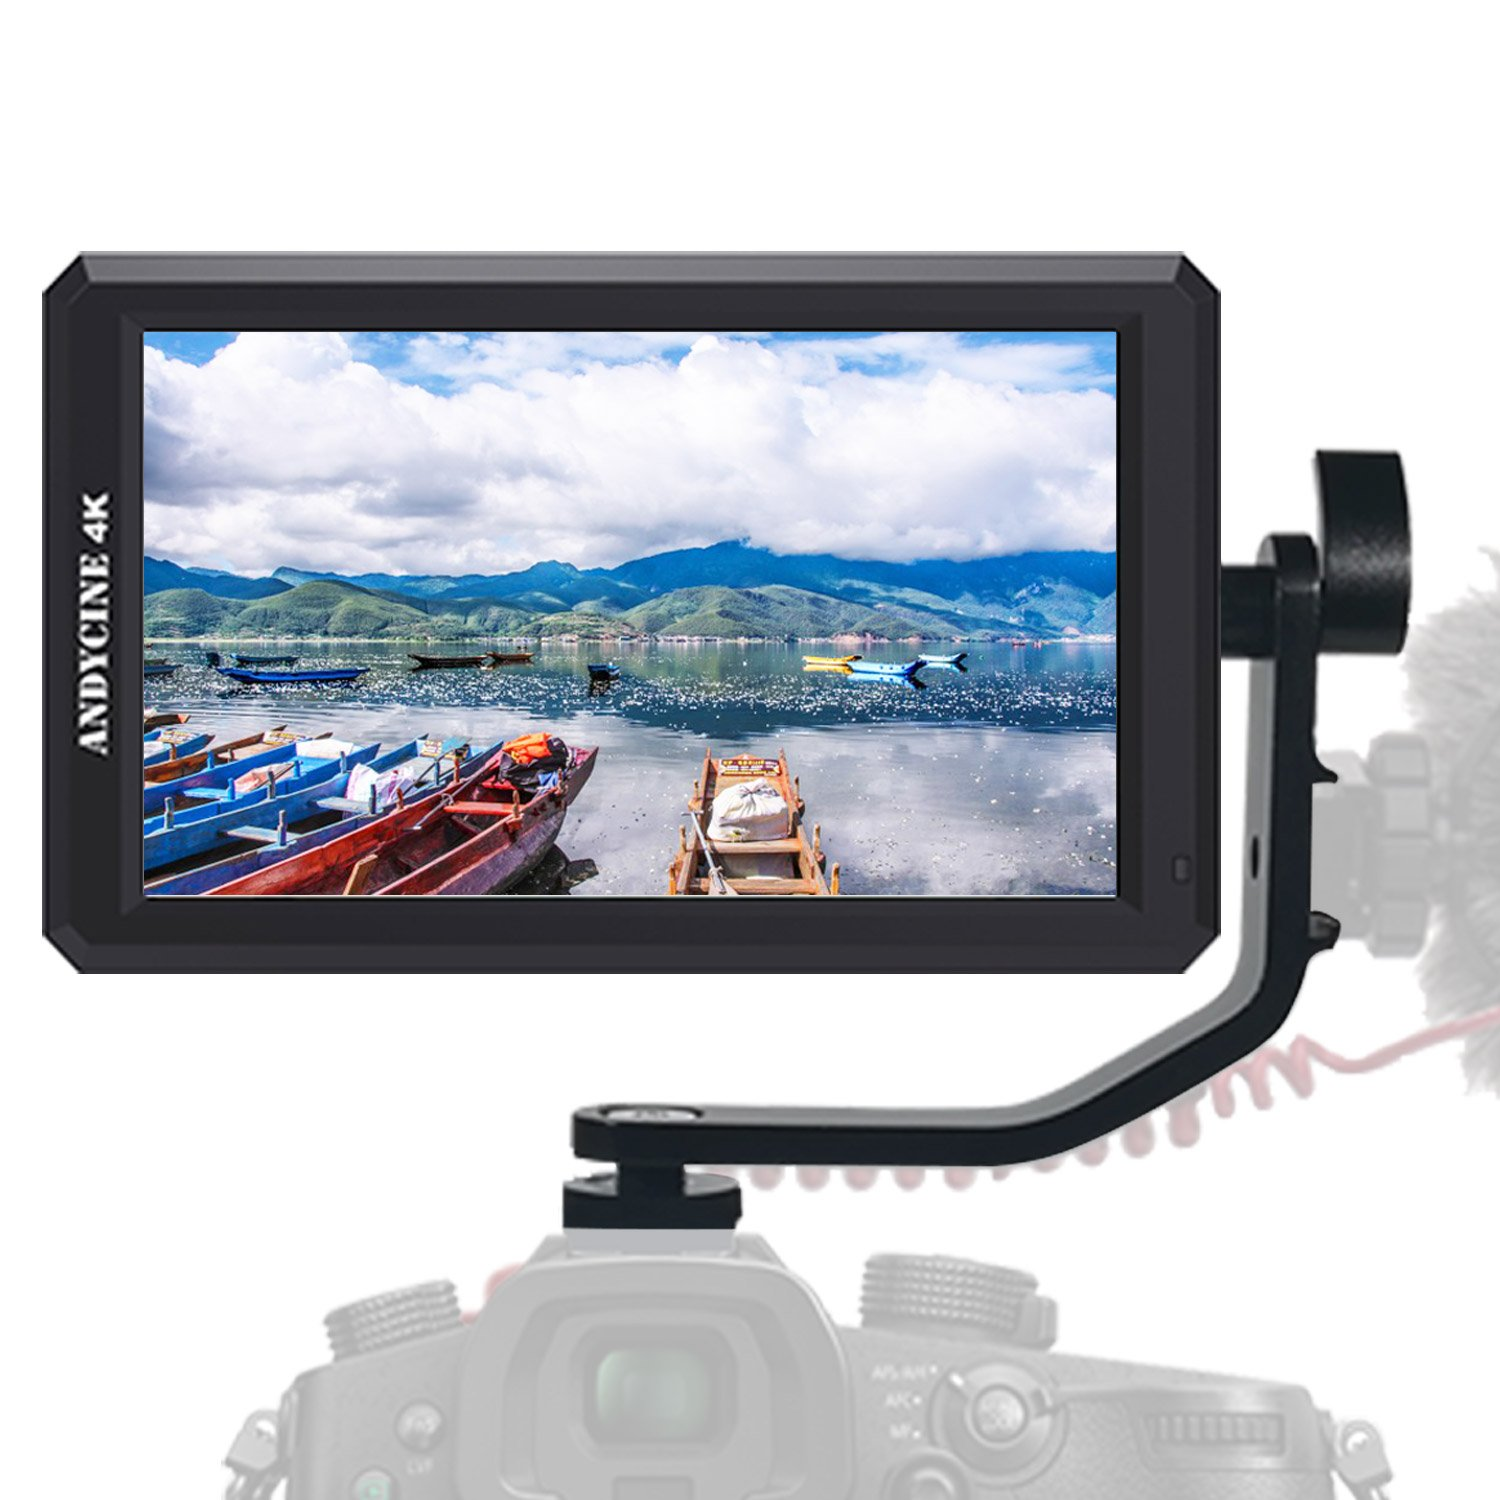 ANDYCINE A6 5.7Inch 1920x1080 IPS DSLR HDMI Field Video Monitor With DC 8V Power Output Support 4K HDMI Signal for Sony A6 A7 Series GH4 GH5,,Cannon 5D Series Zhiyun Feiyu Moza Gimbals by ANDYCINE